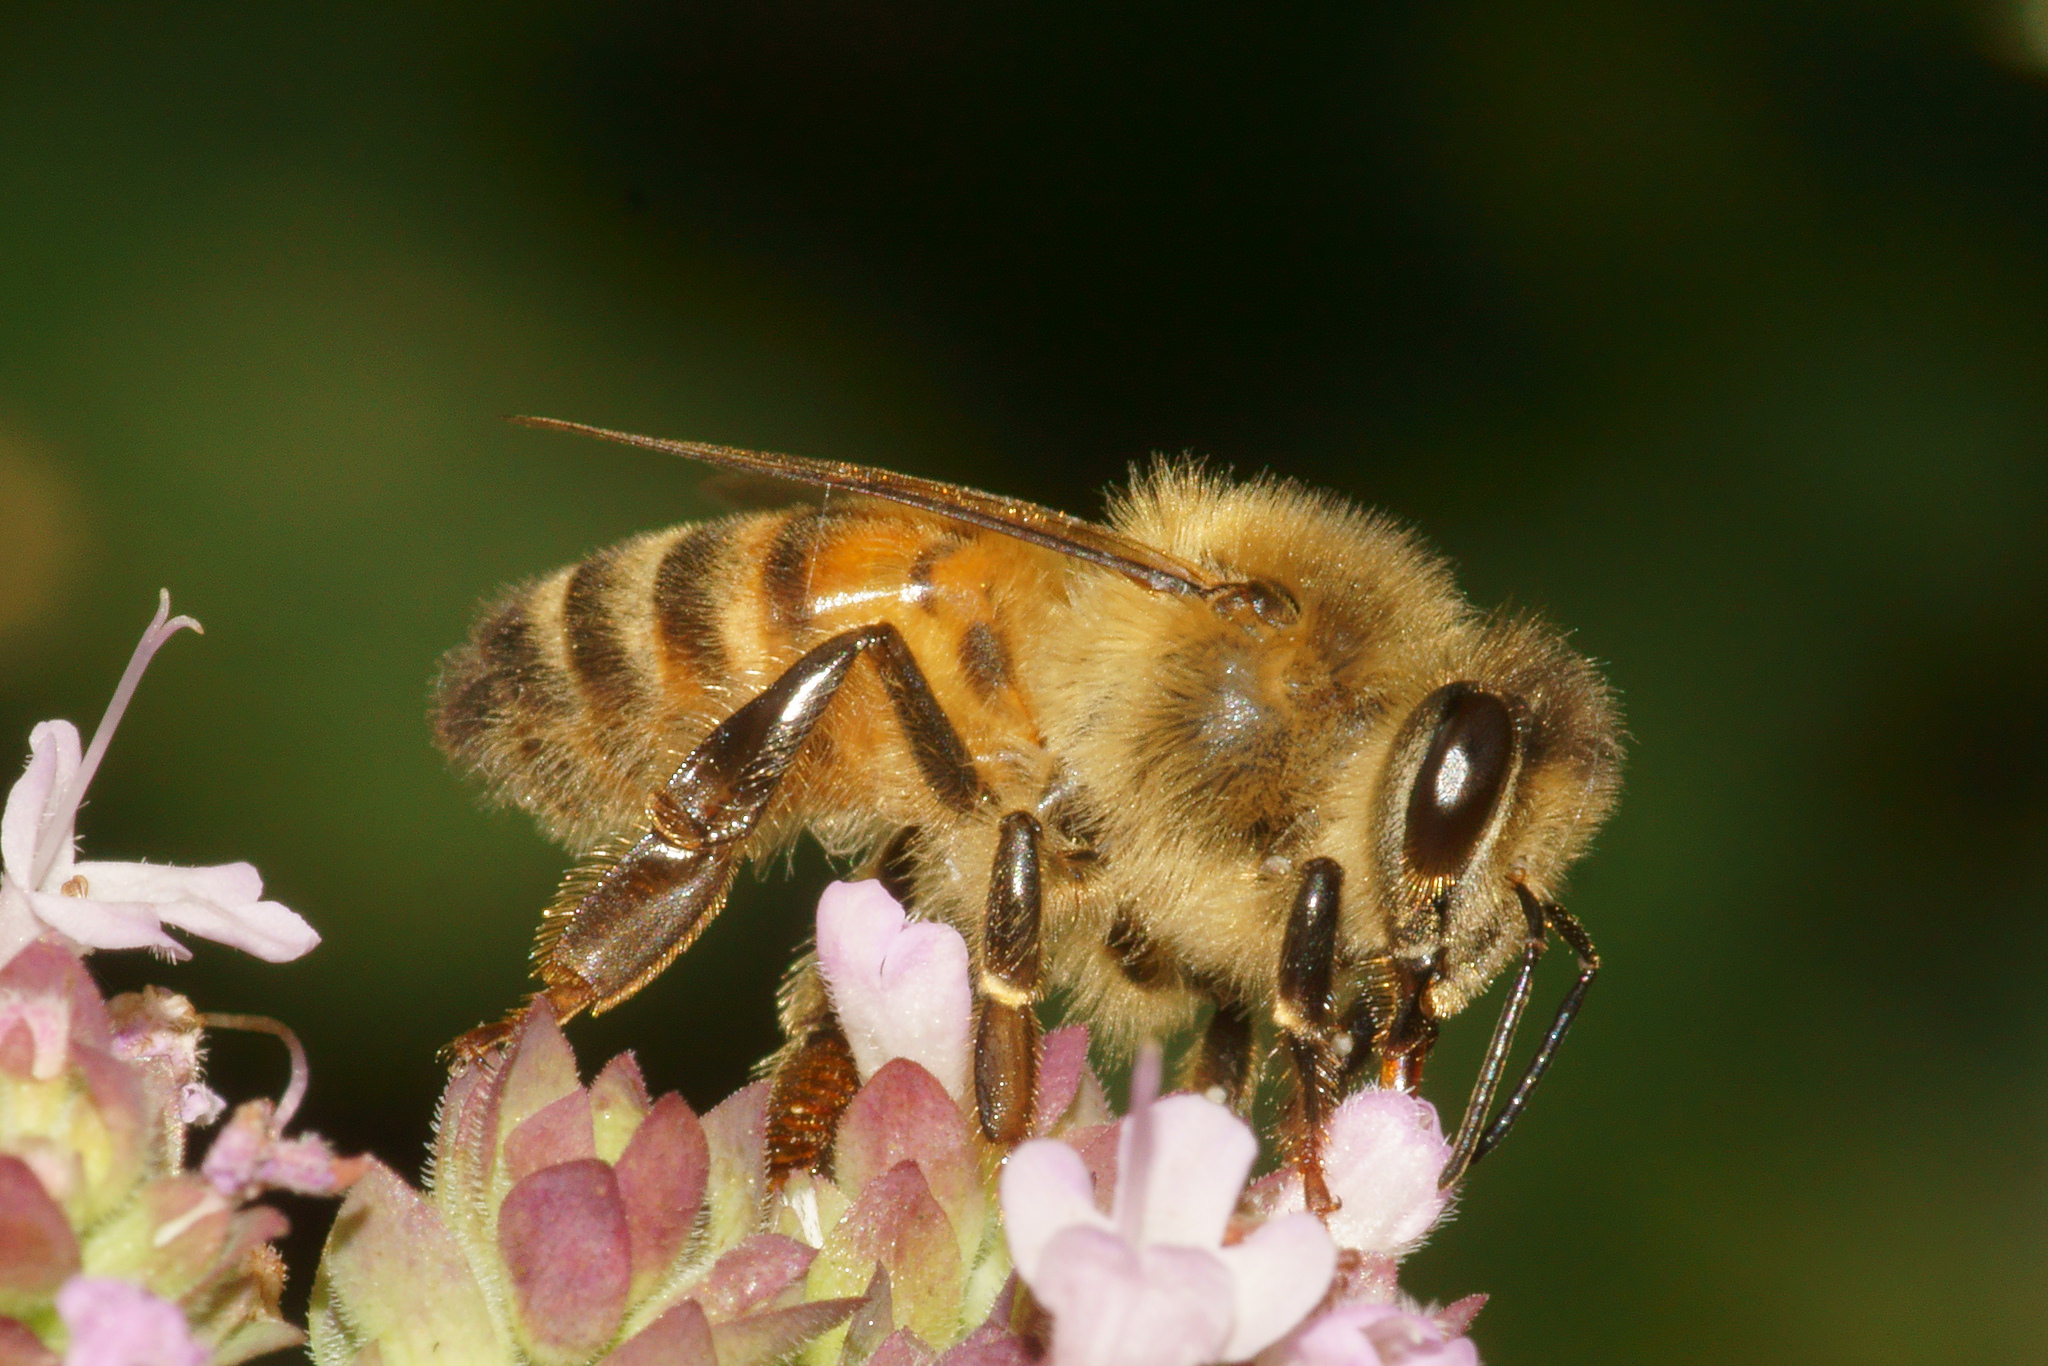 Honey Bee (Apis Mellifera) by Bramblejungle.